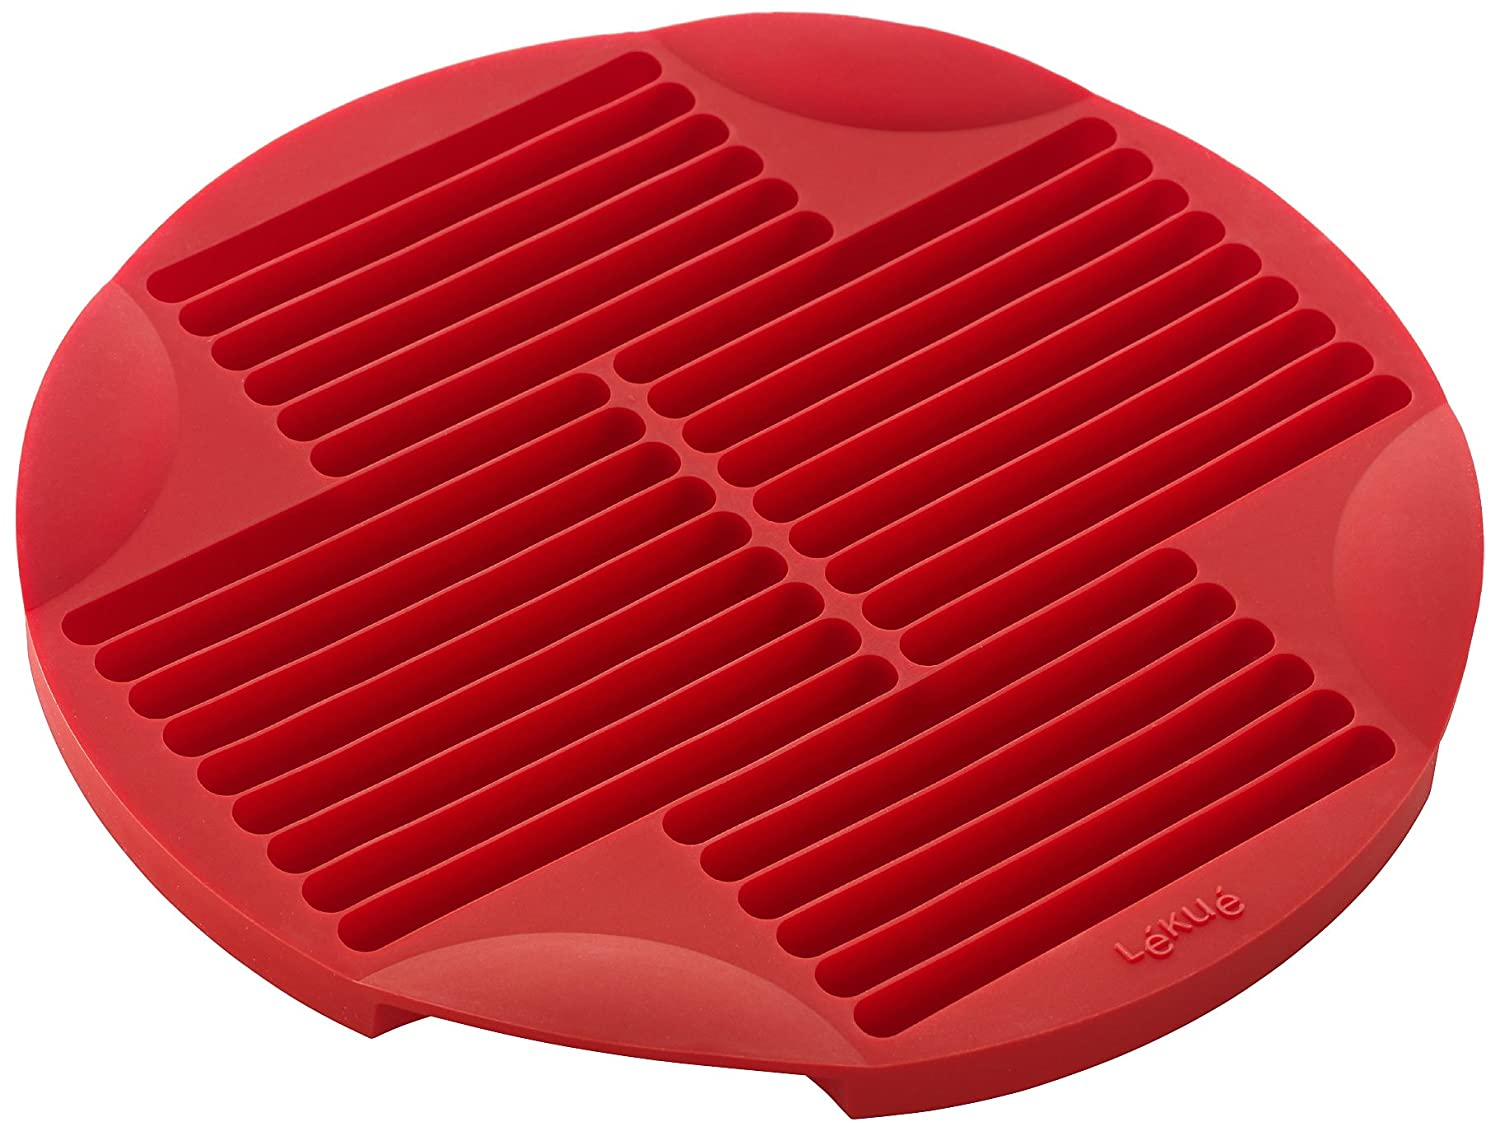 Lekue Sticks Silicone Baking Mold, Model # 0210600R01M017, Red Lekue Cookware